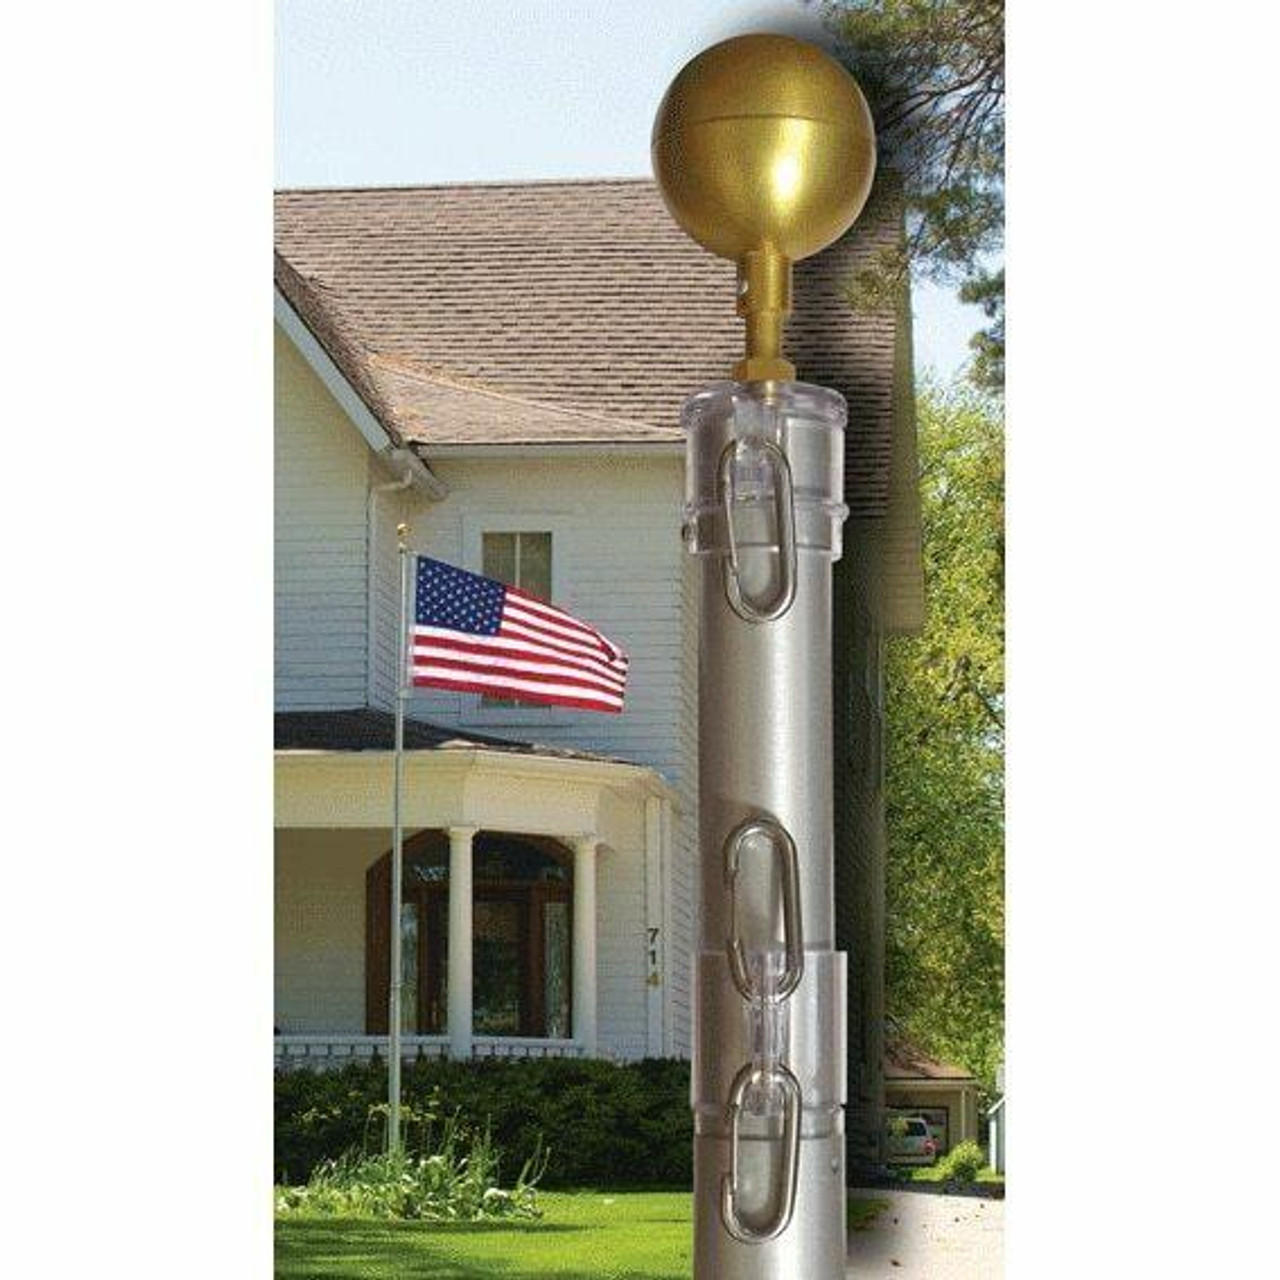 The 25 foot Telescoping Flagpole stands in front of a house with an American flag sitting atop it. In the photo's foreground is a close up shot of the top of the flagpole, showing the gold painted aluminum decorative ball, the flagpole's polycarbonate cap, and halyard snaps for easy attachment to your flagpole.